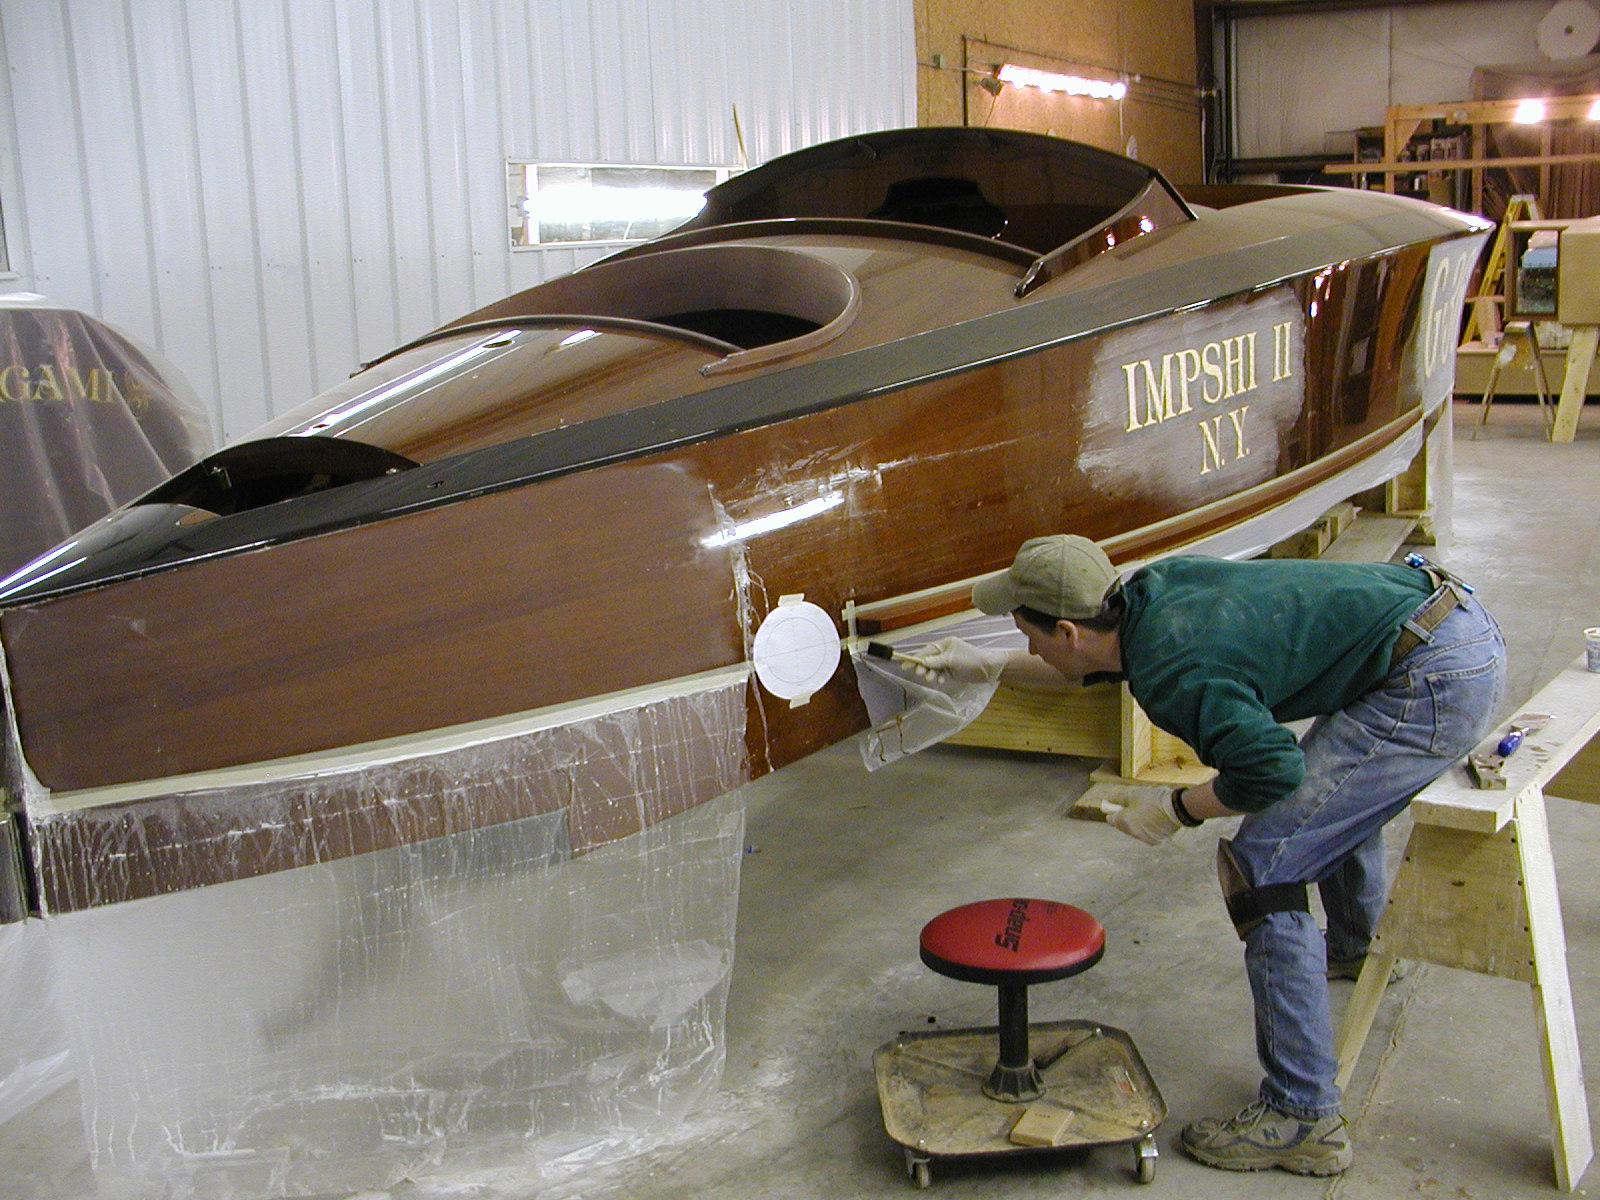 Clear coat being applied to Imshi